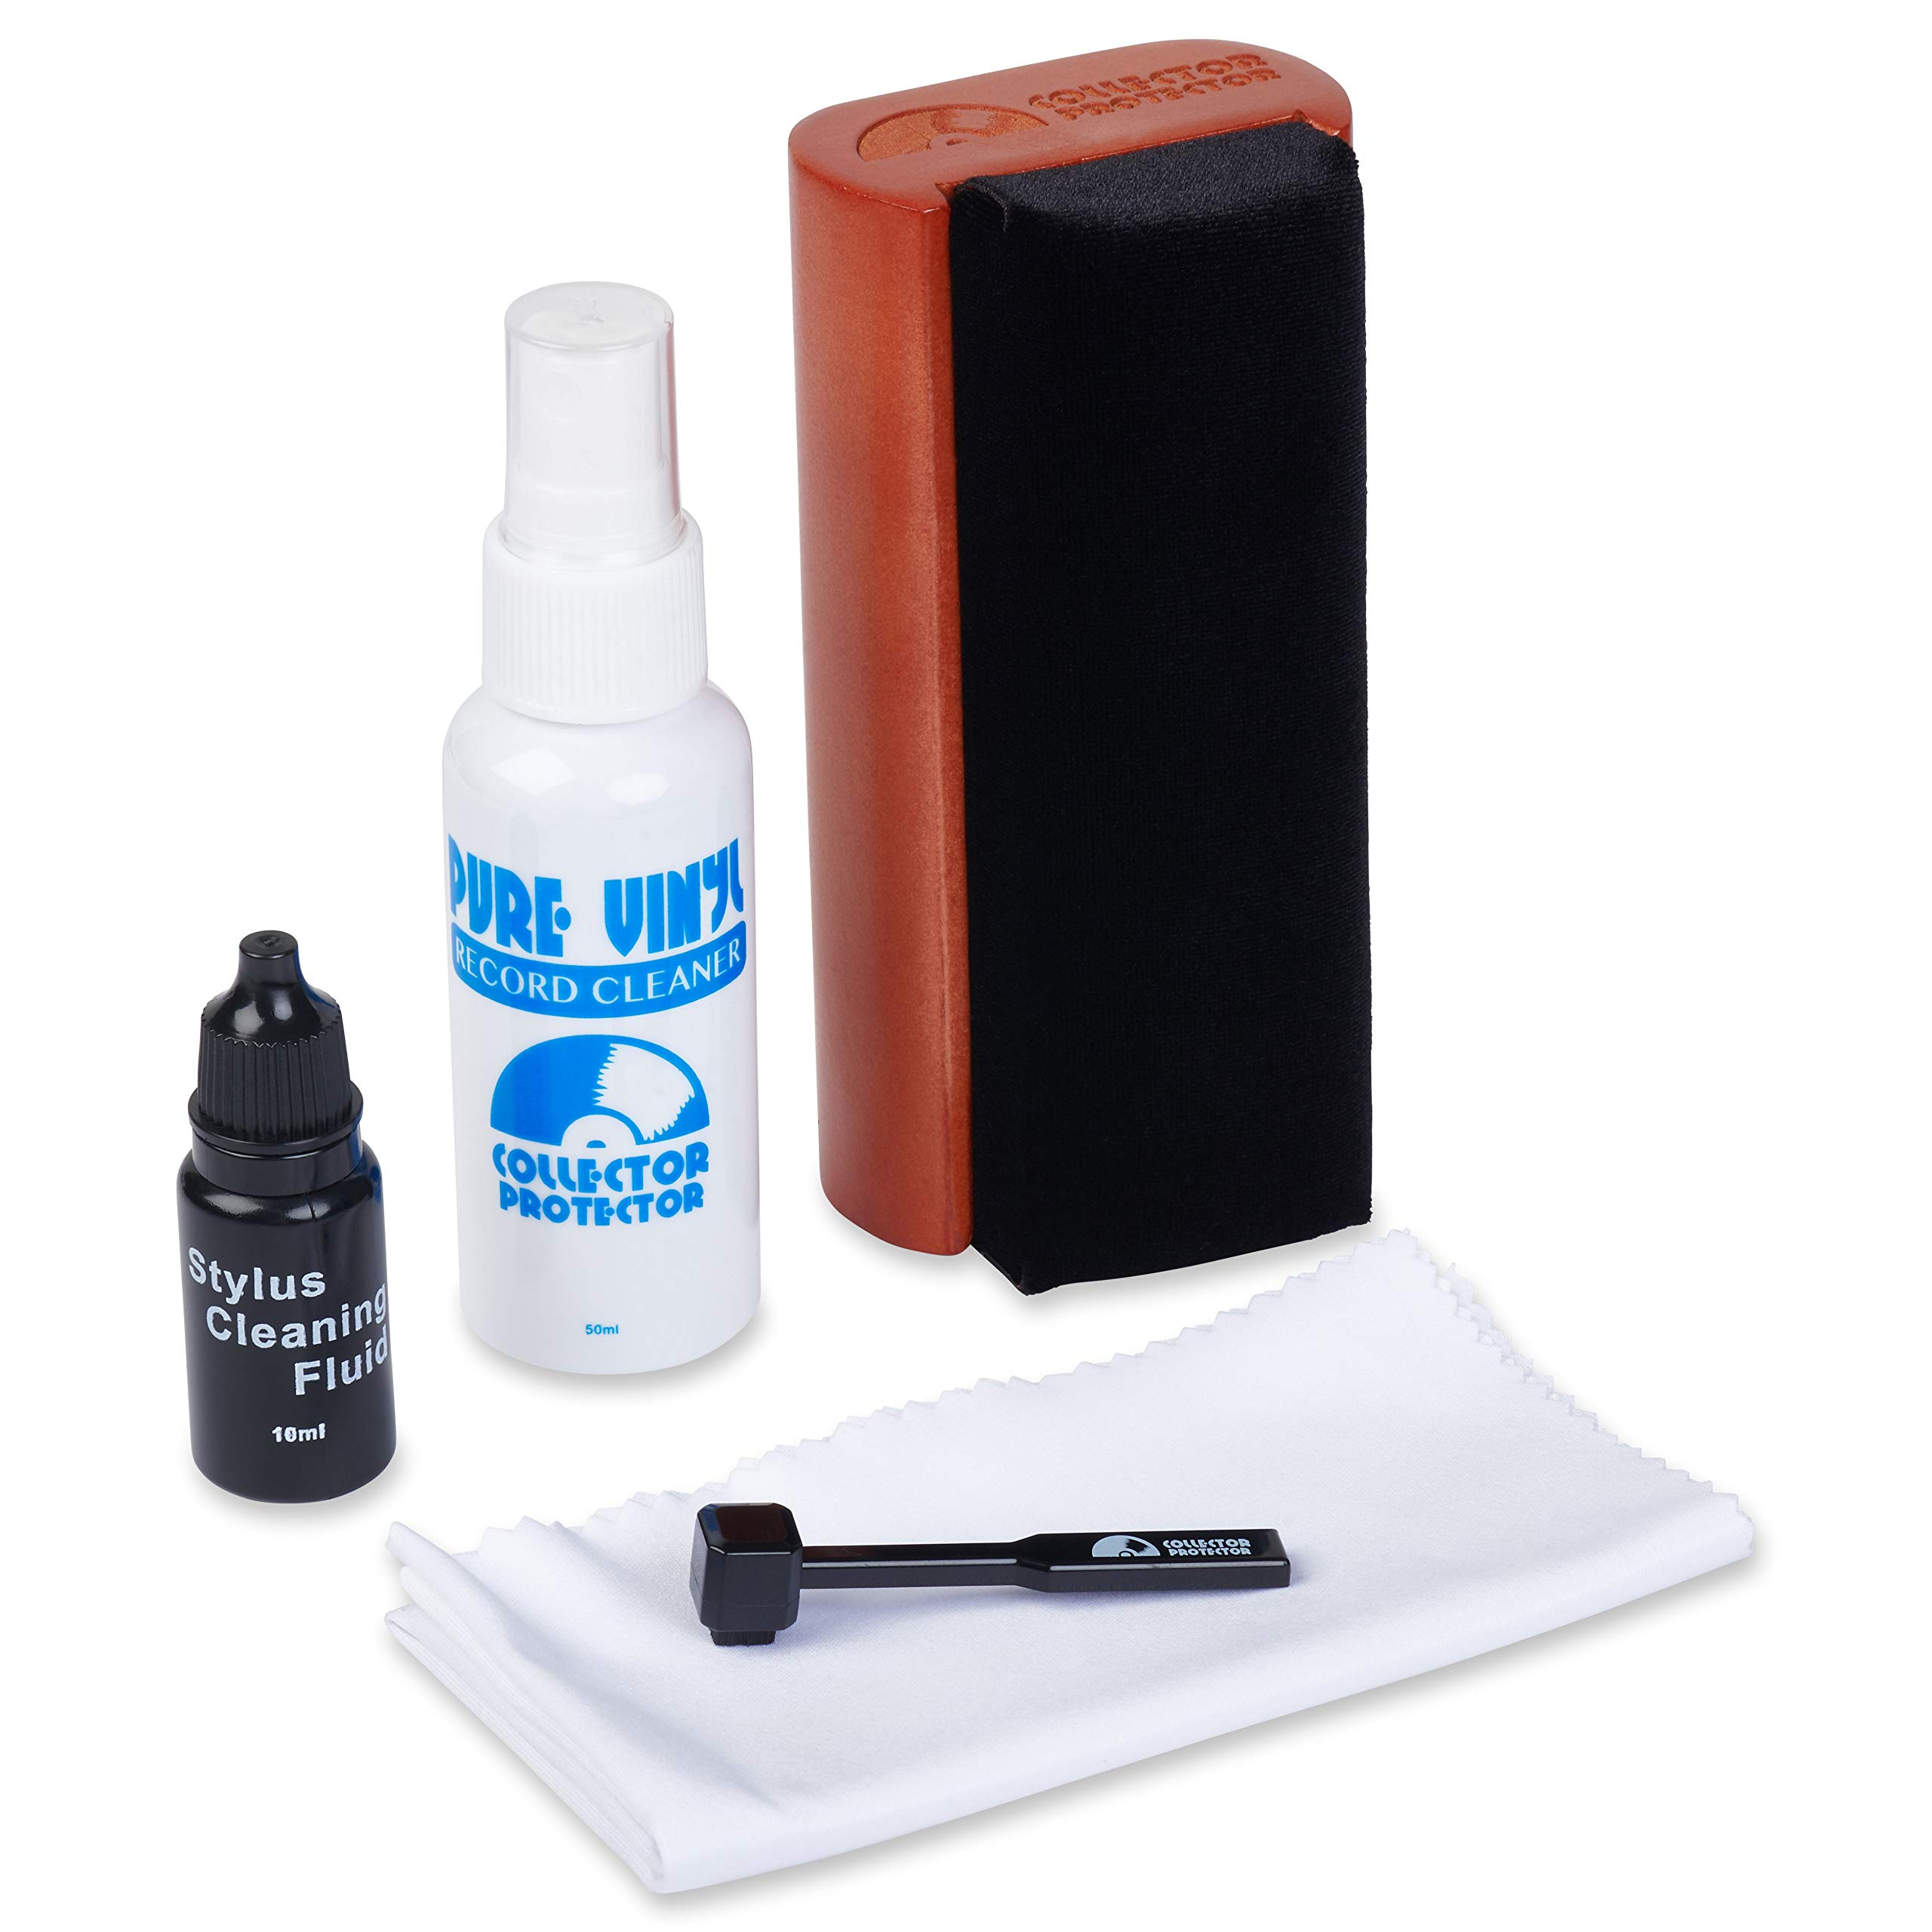 Collector Protector 5-in-1 Vinyl Record Cleaning Kit. Includes Soft Velvet Record Brush, Pure Vinyl Cleaning Solution, Stylus Cleaner & Brush, Microfiber Cloth & Storage Pouch by Collector Protector (Image #1)